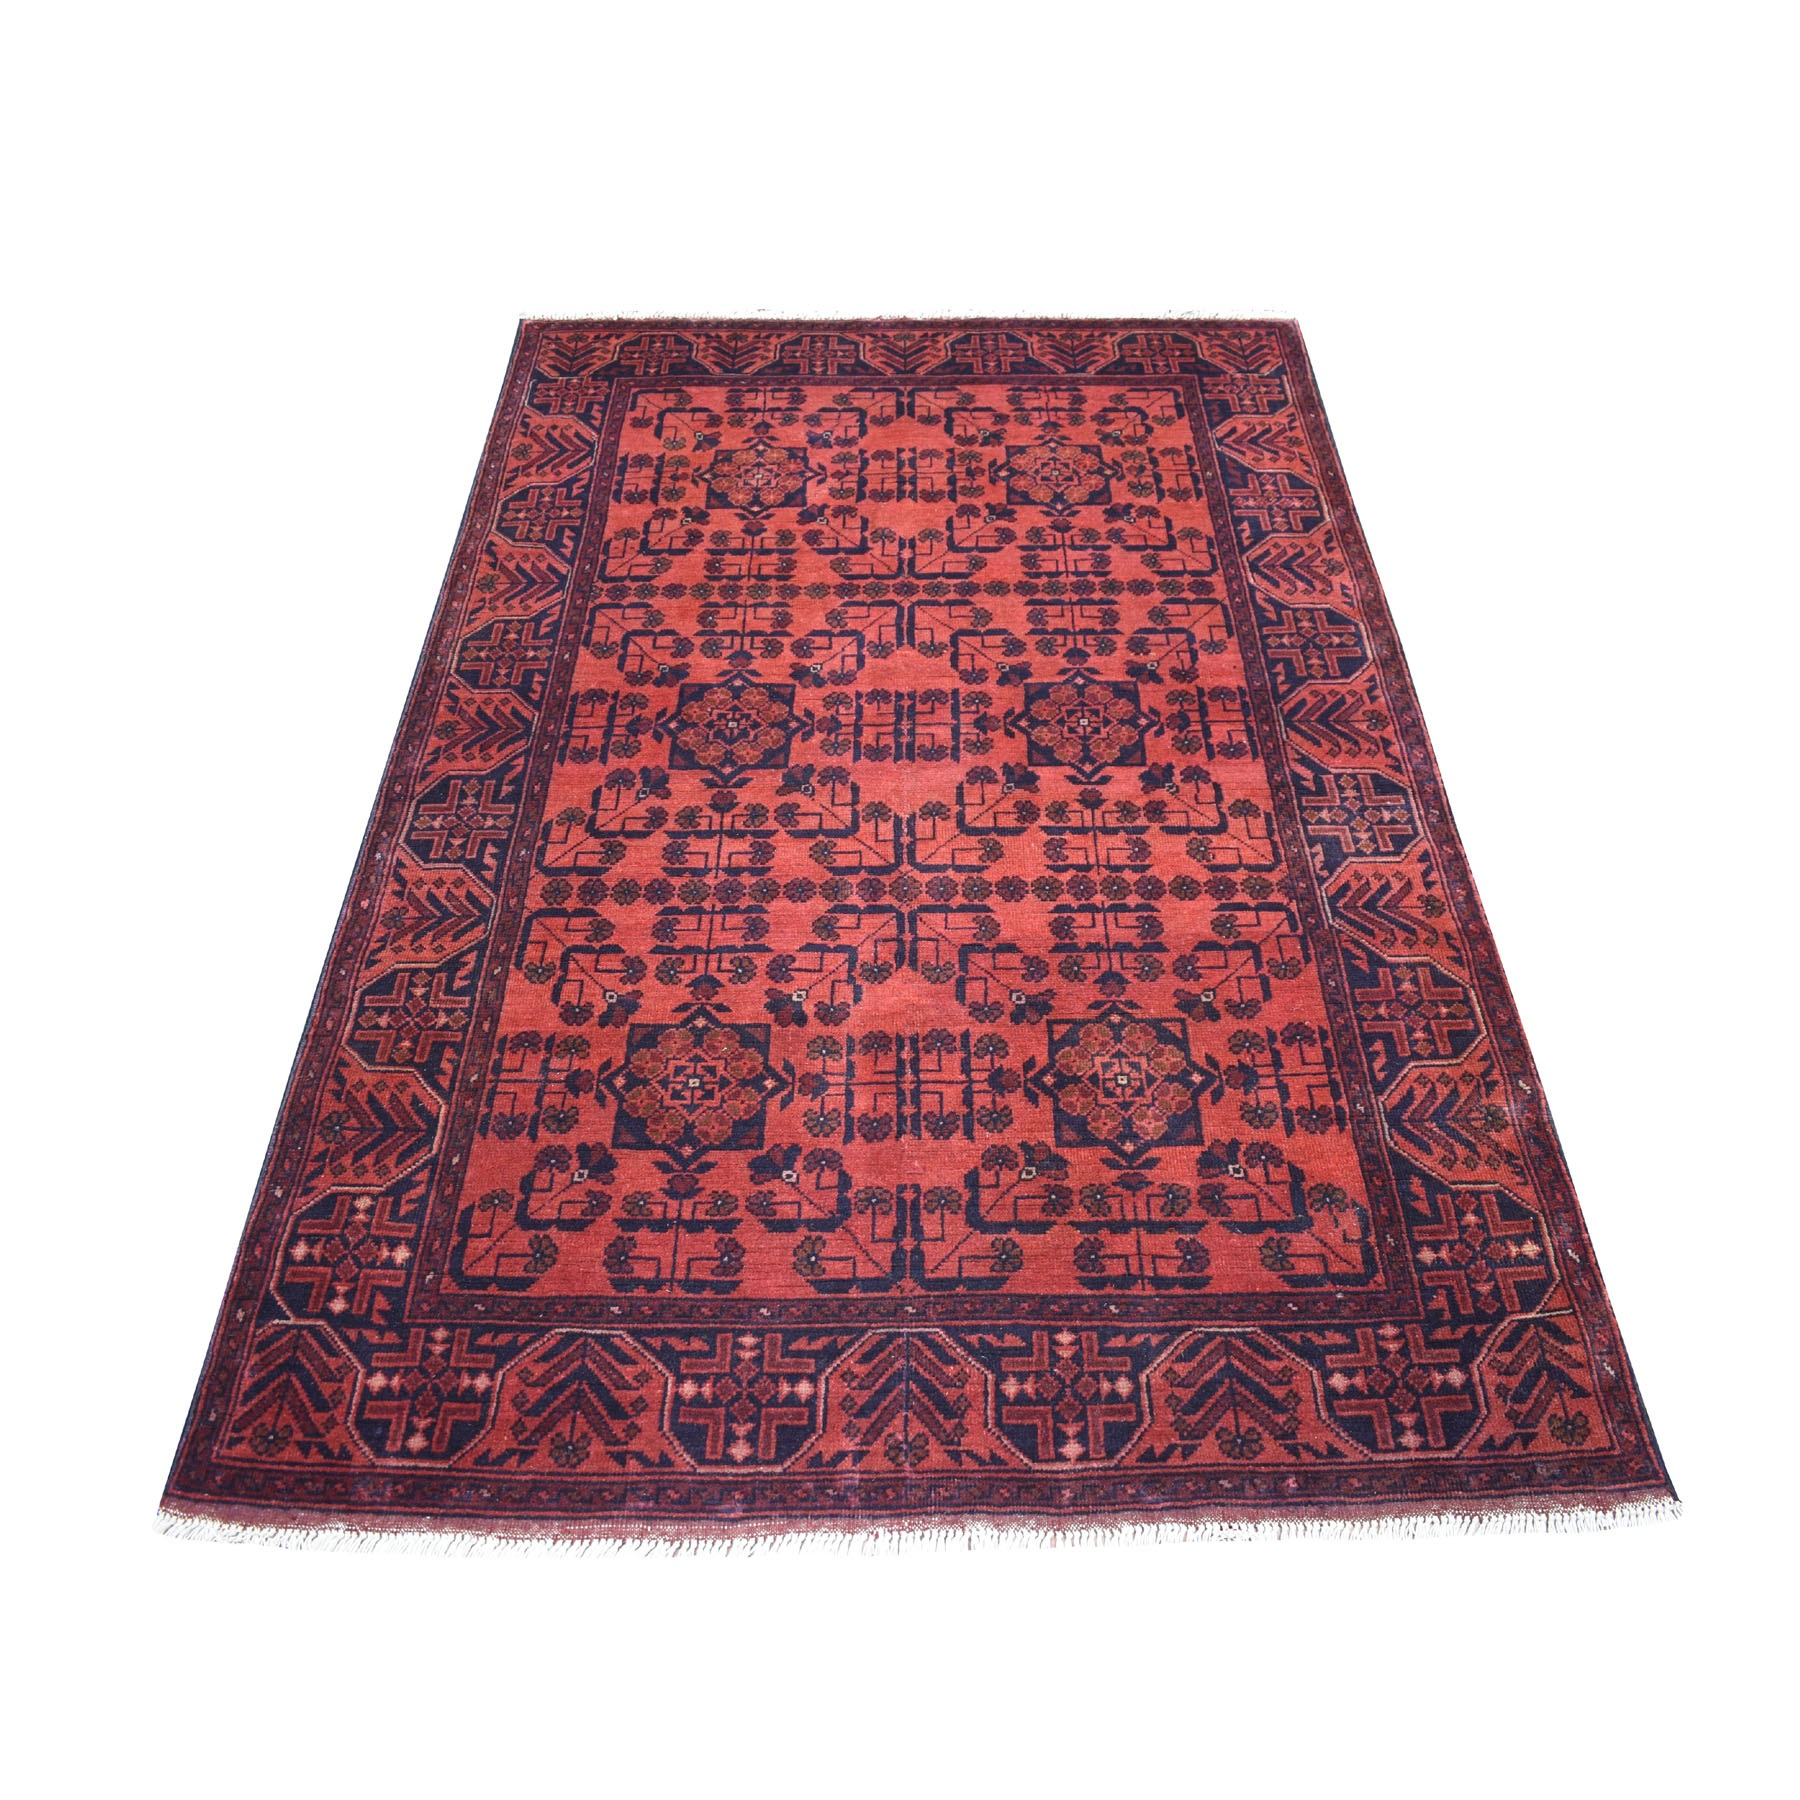 "4'2""x6'7"" Deep and Saturated Red Geometric Design Afghan Andkhoy Pure Wool Hand Woven Oriental Rug"